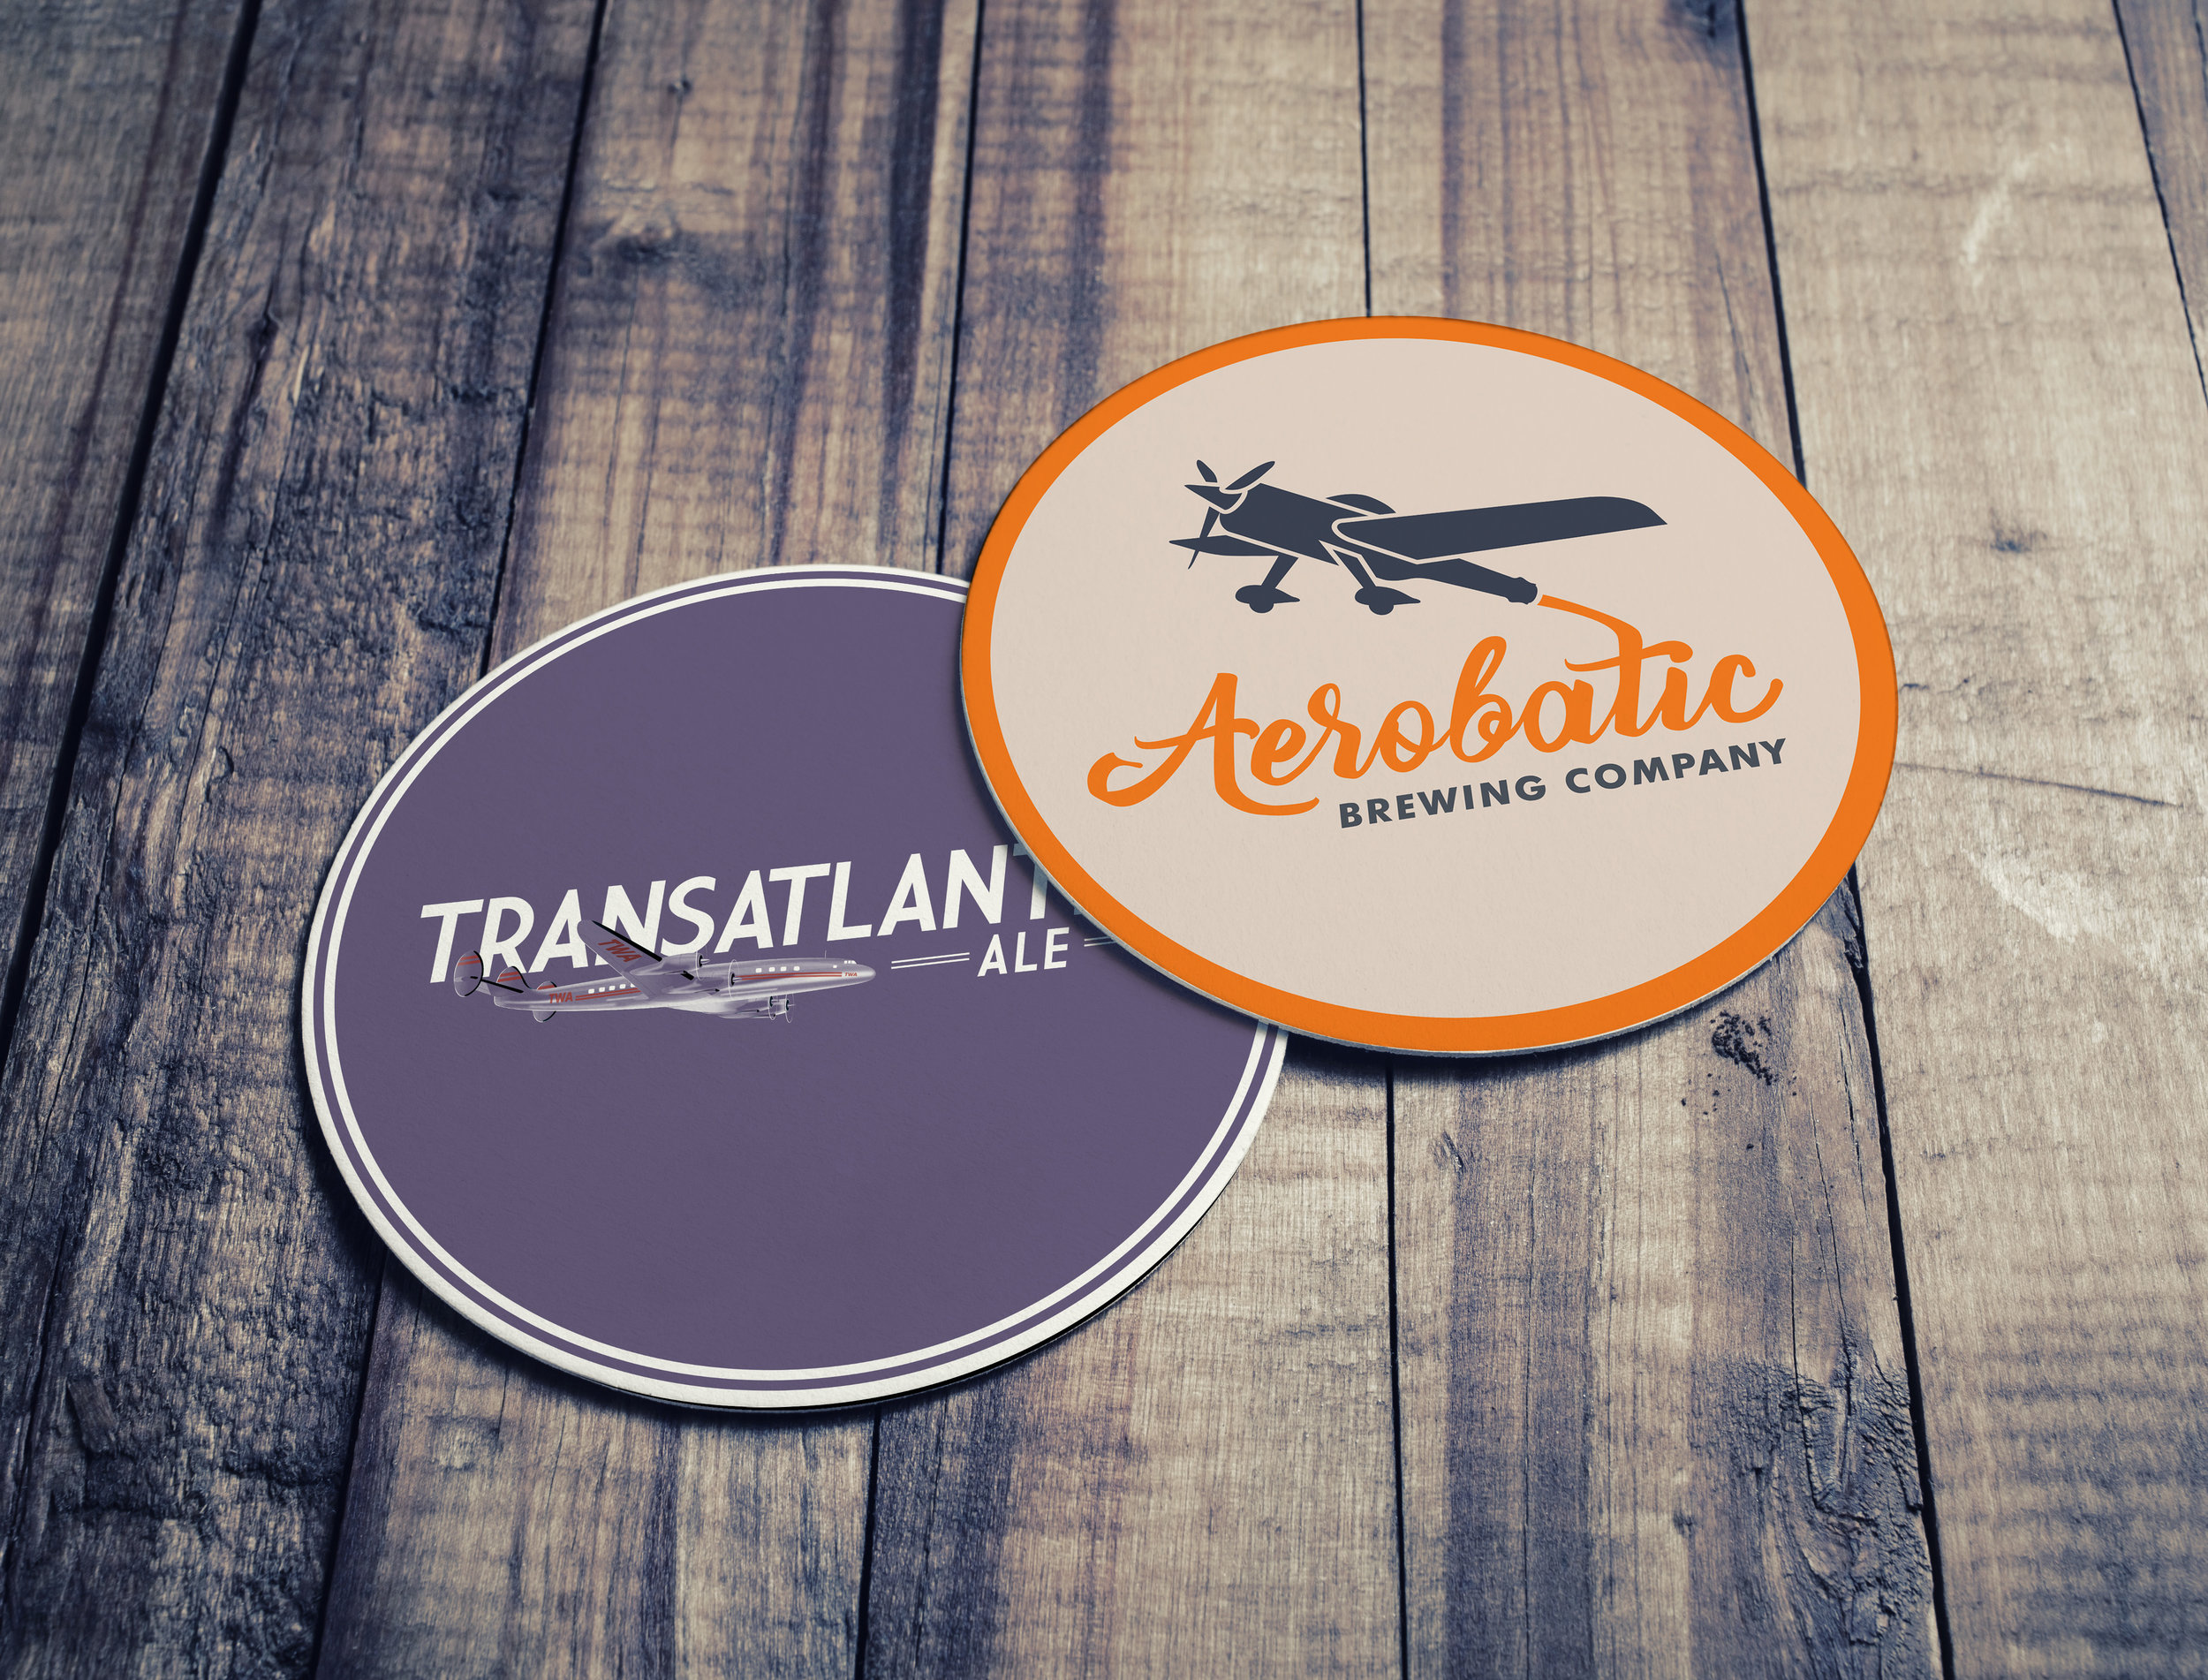 Coaster-transatlantic-ale-aerobatic-brewery-kyle-dolan-design-illustration.jpg